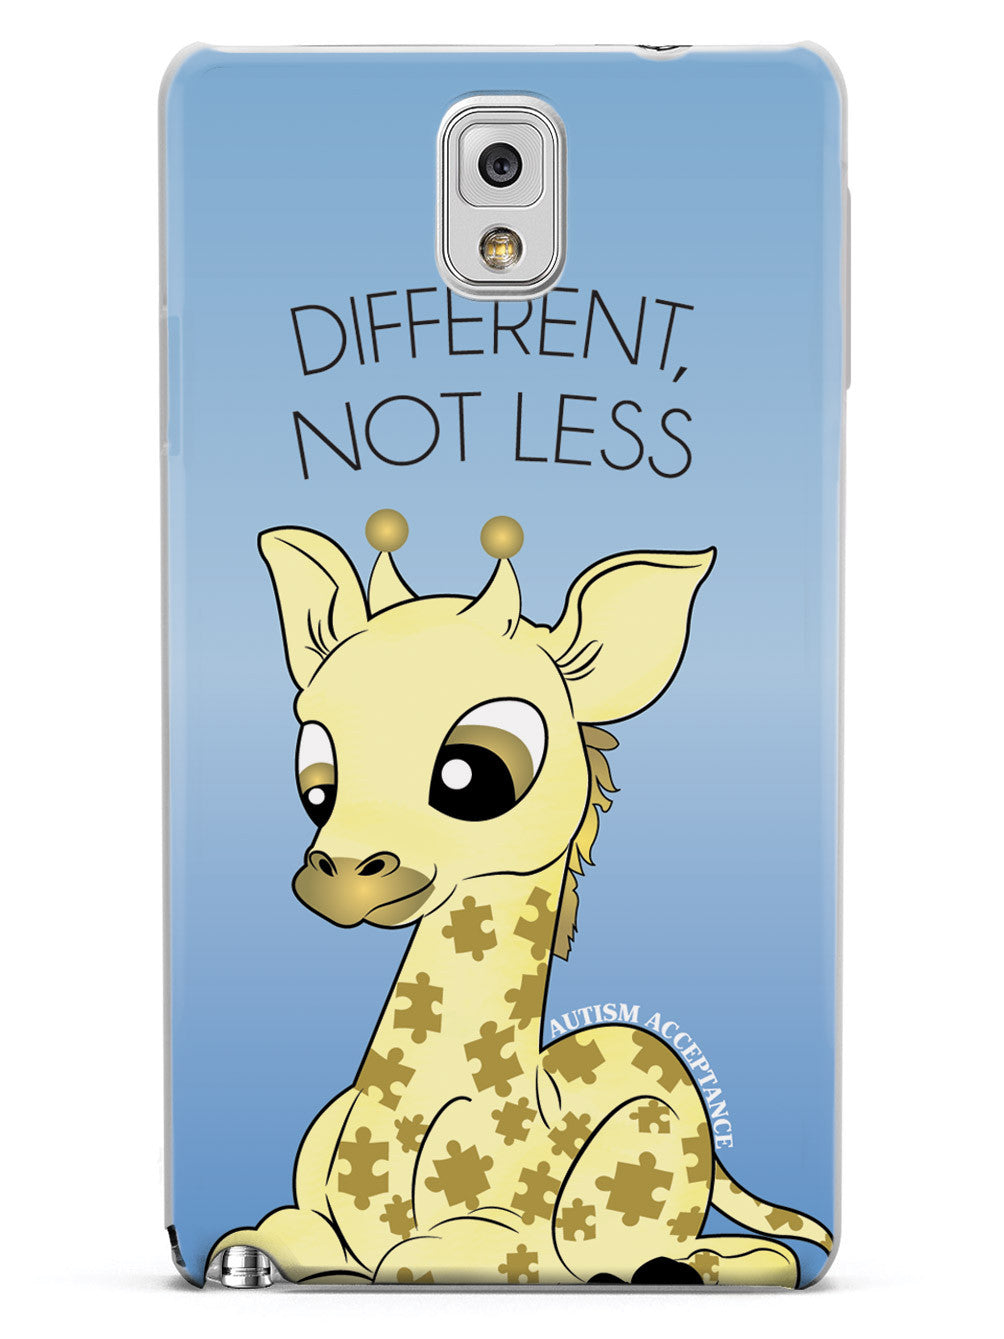 Different, Not Less Giraffe - Autism Awareness Case